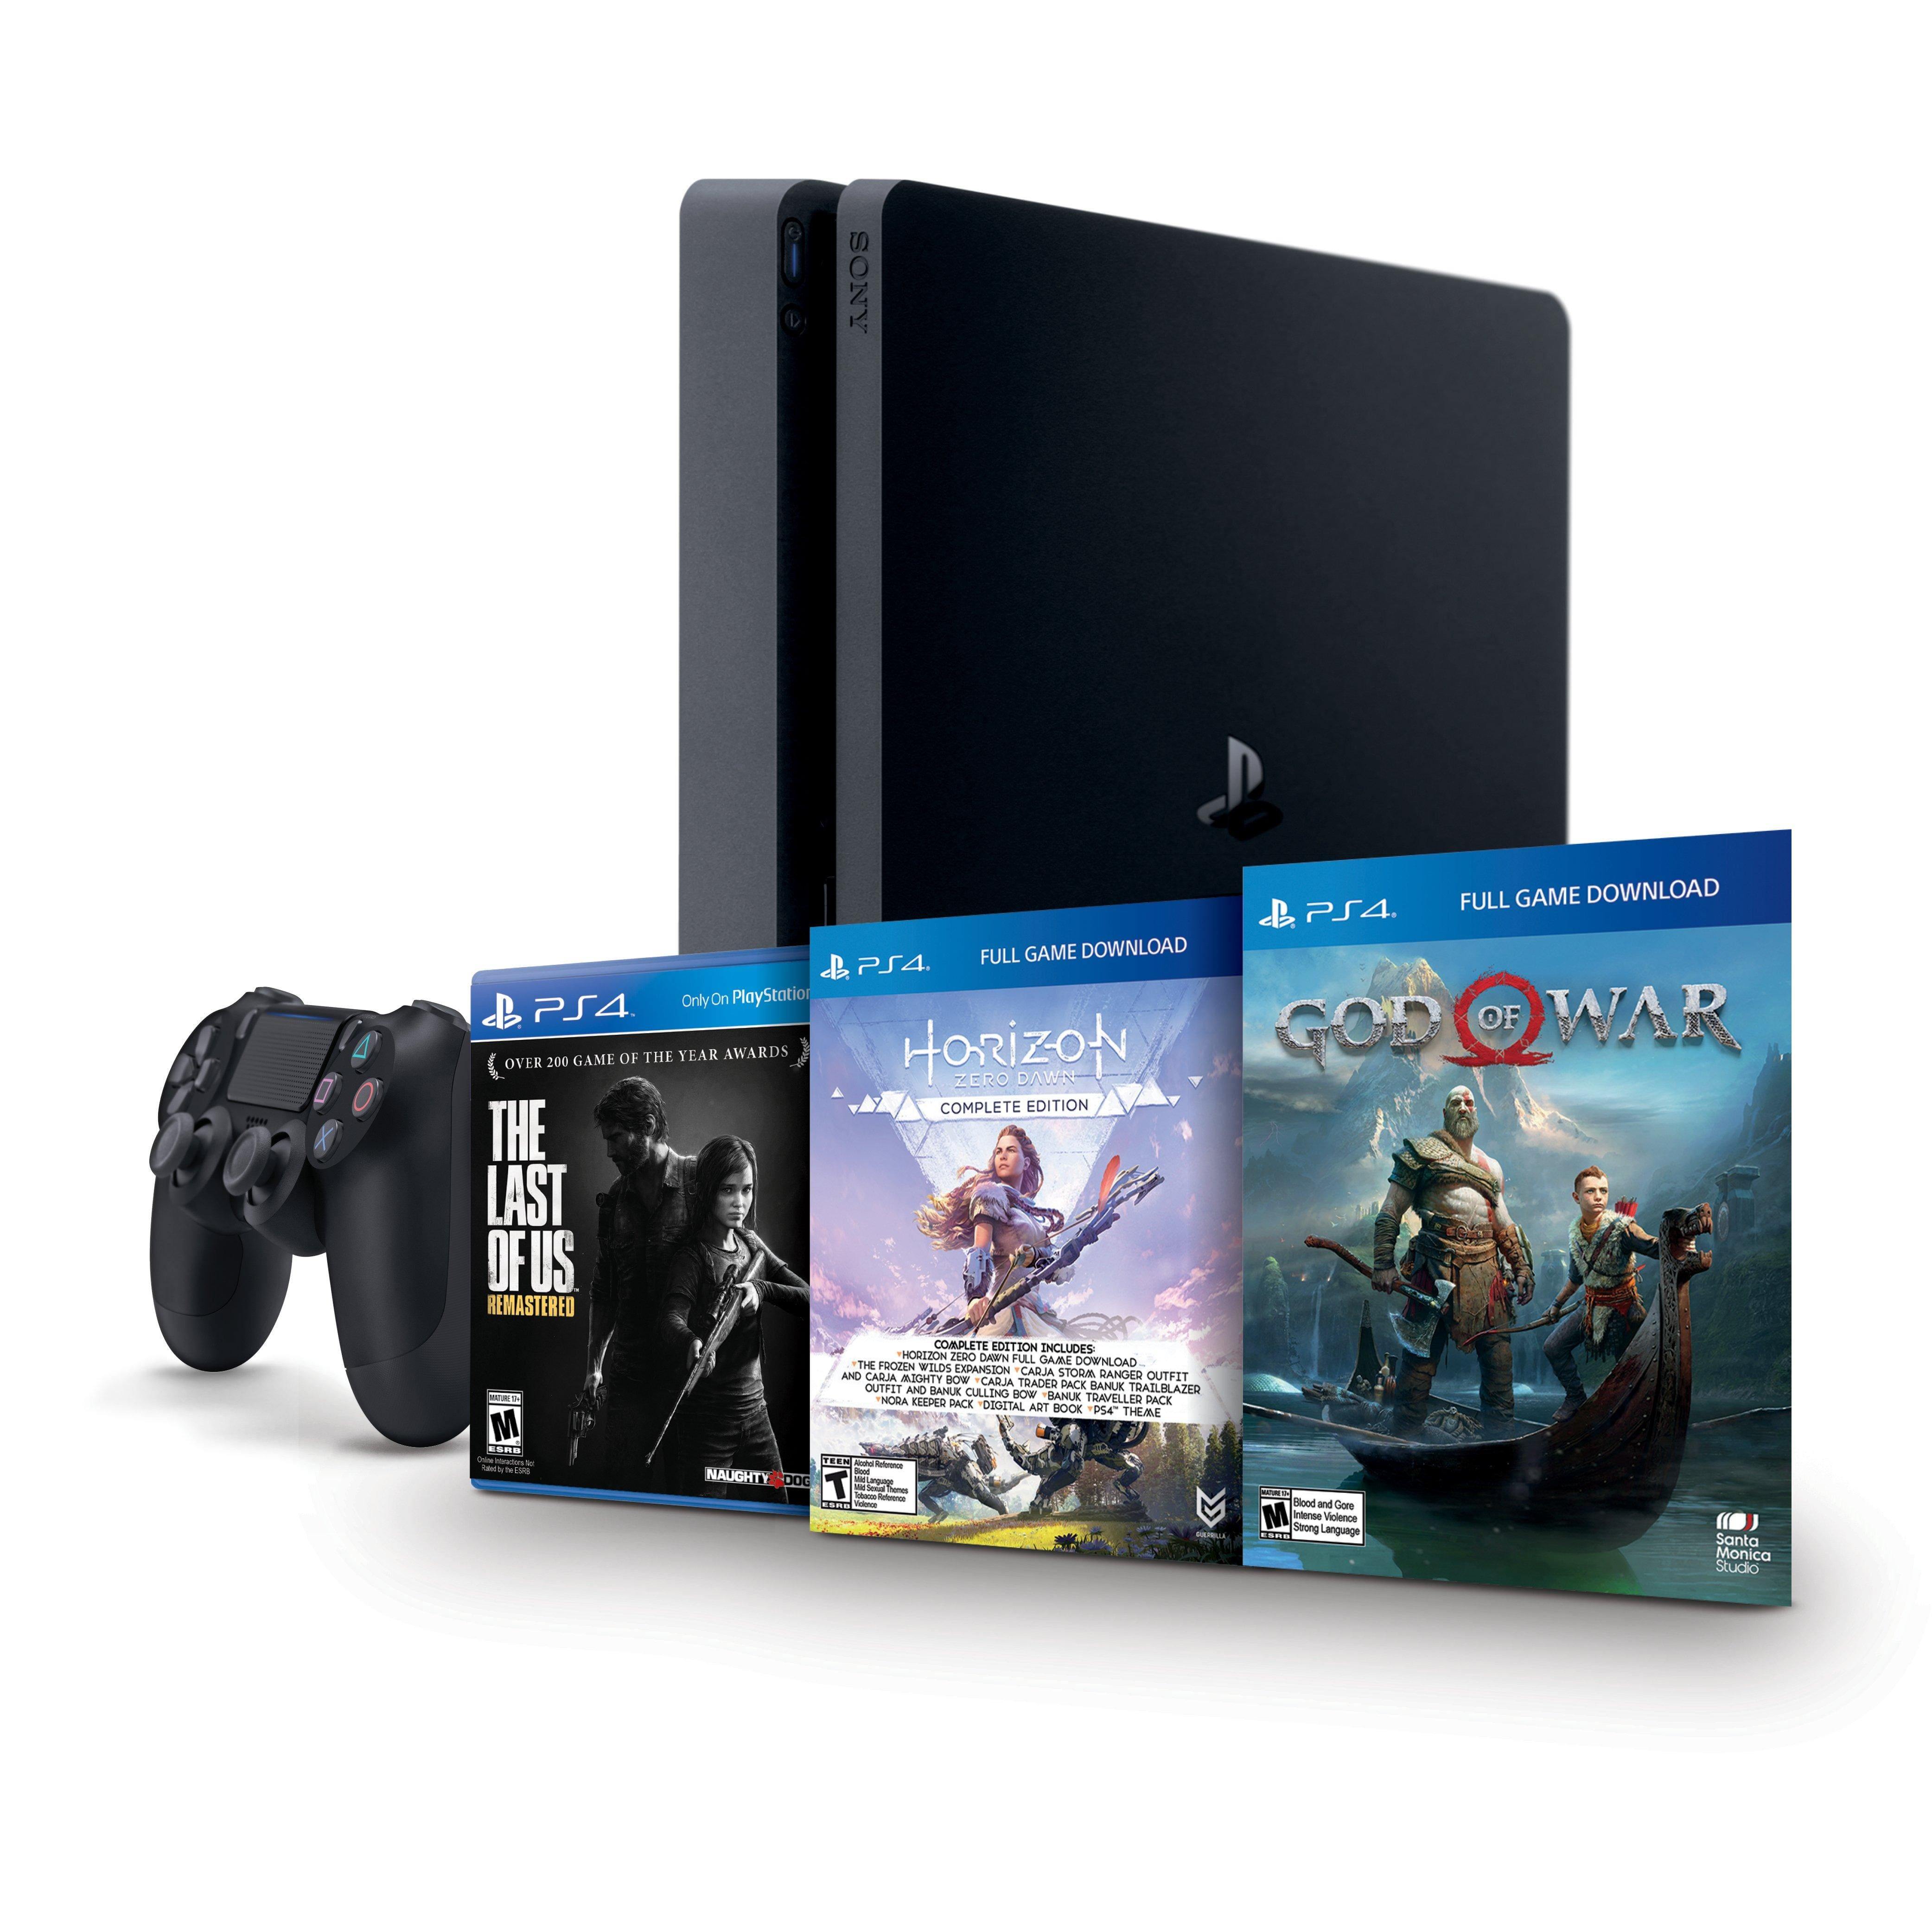 Back in stock PlayStation 4 Only on PlayStation Bundle $200